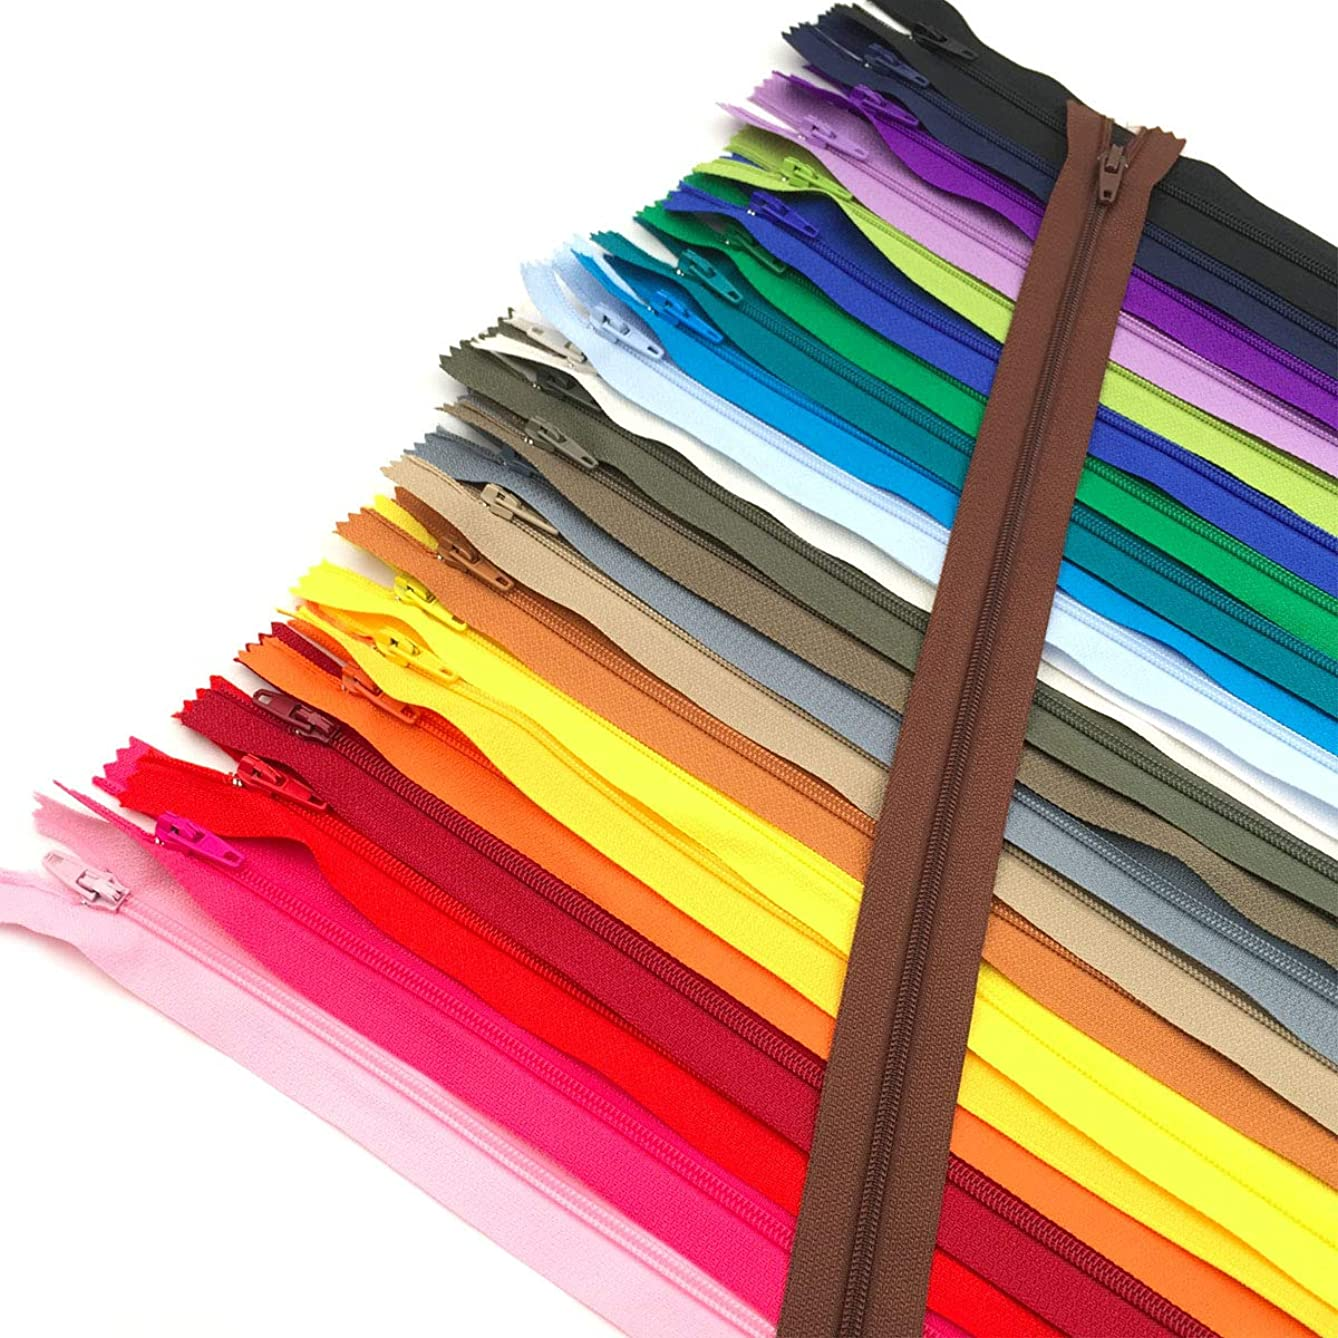 60pcs 16 inch Zippers-25Colors Nylon Coil Zipper Bulk #3 Zippers for Tailor Sewing Crafts